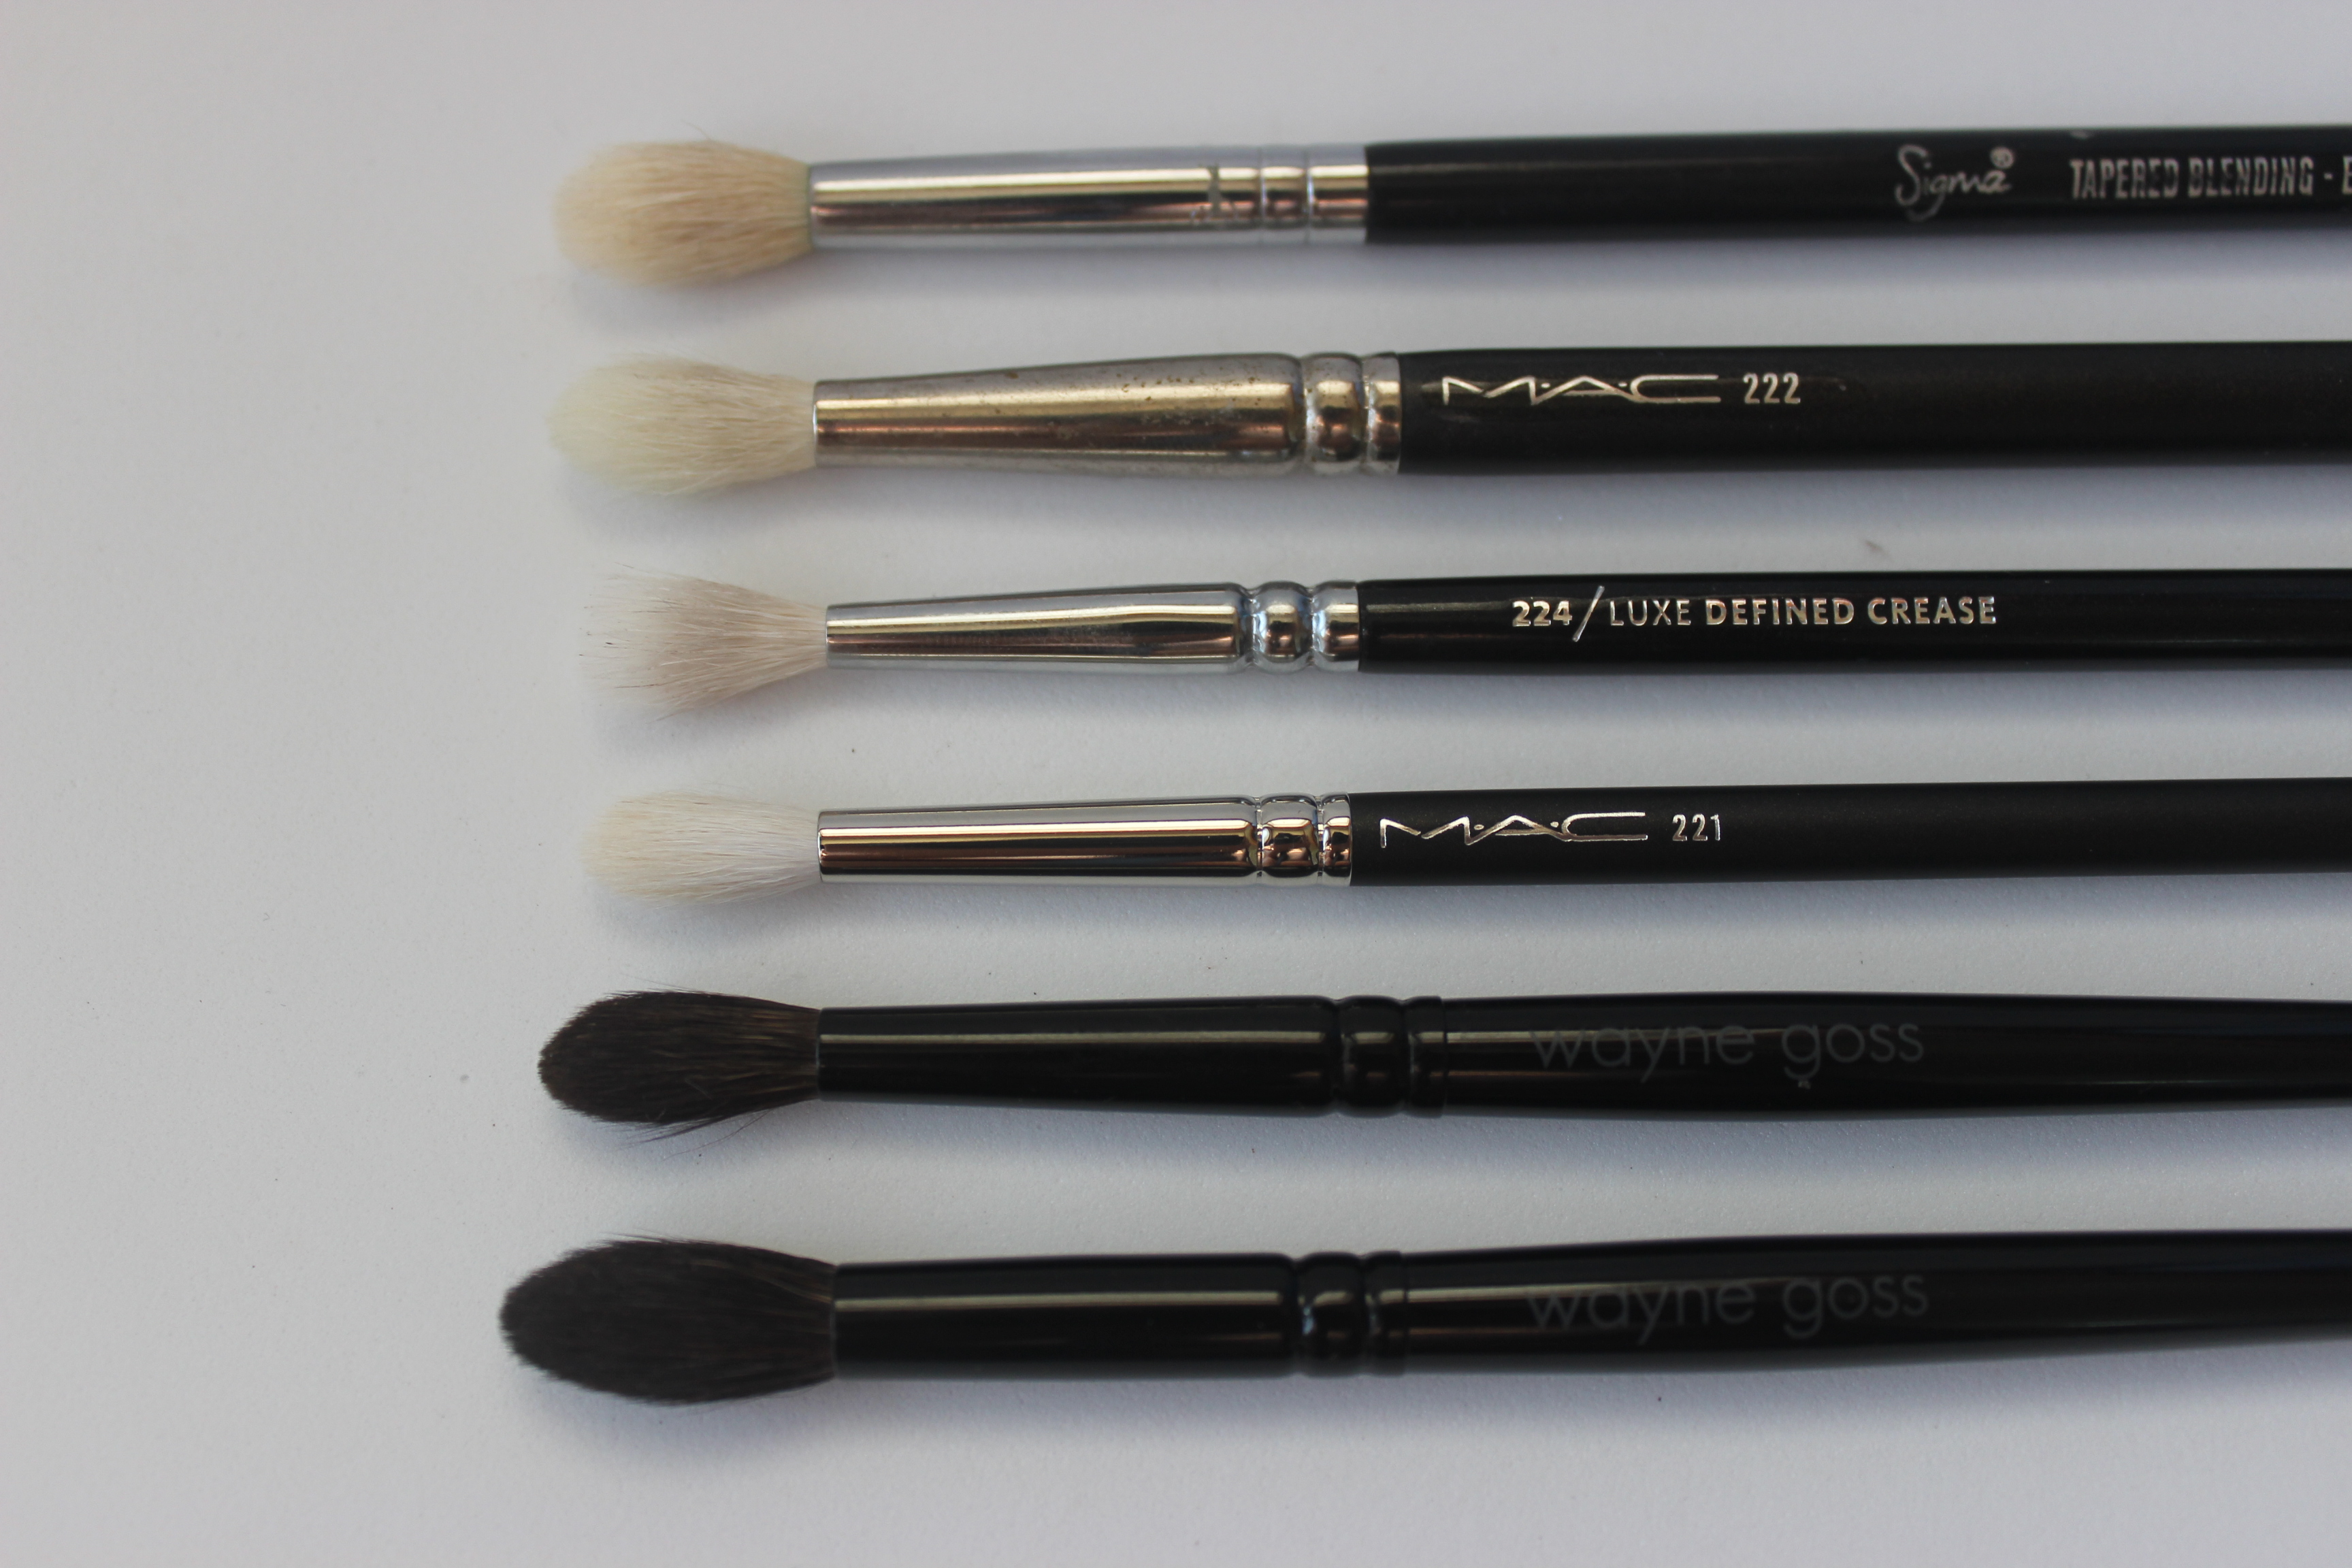 mac blending brush 224. sigma e35, mac 222, zoeva luxe defined crease, 221, wayne goss 04, 03 mac blending brush 224